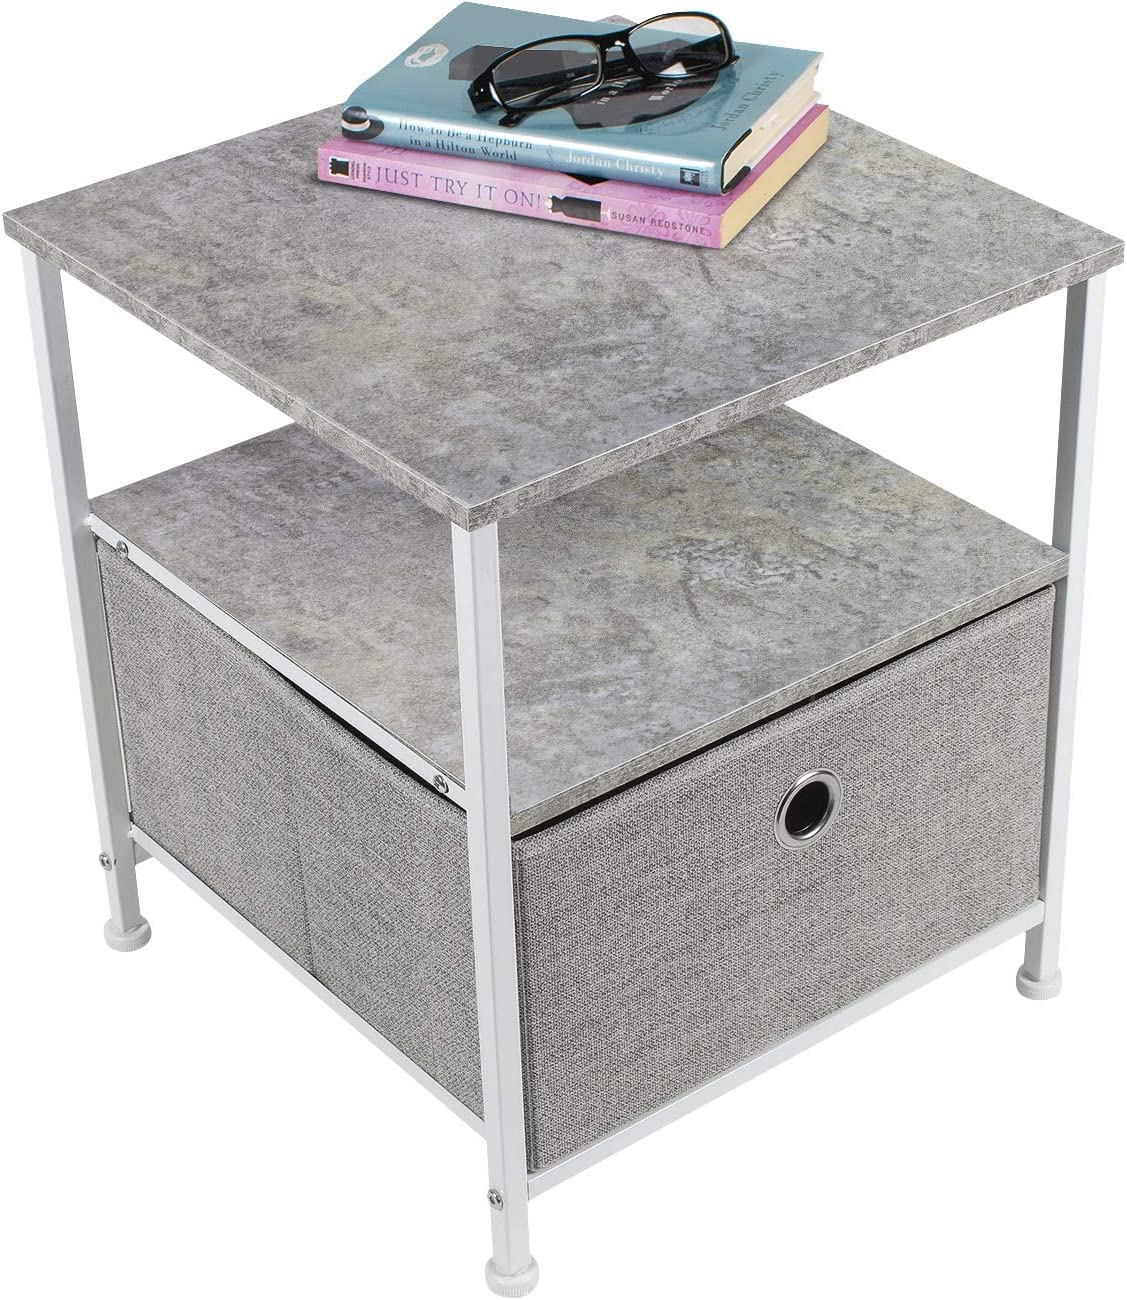 Sorbus Nightstand 1-Drawer Shelf Storage- Bedside Furniture Accent End Table Chest for Home, Bedroom, Office, College Dorm, Steel Frame, Wood Top, Easy Pull Fabric Bins Gray